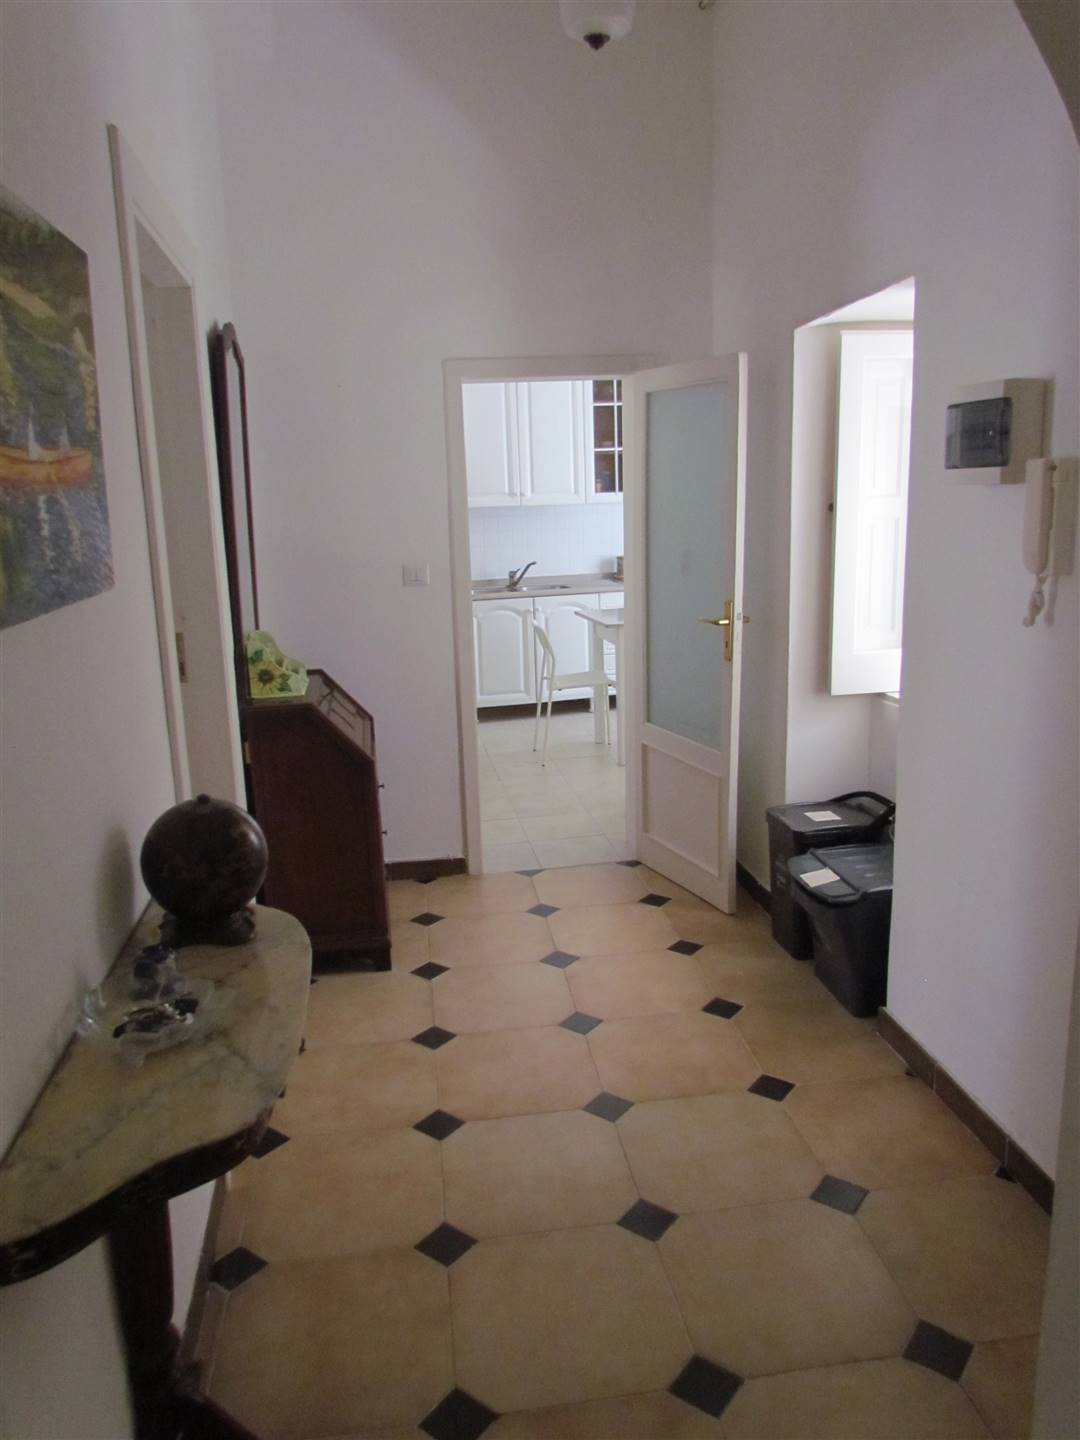 we have a 120 sqm apartment located on the first floor, consisting of entrance hall, living room, kitchen, bedroom, bathroom and closet. Furnished